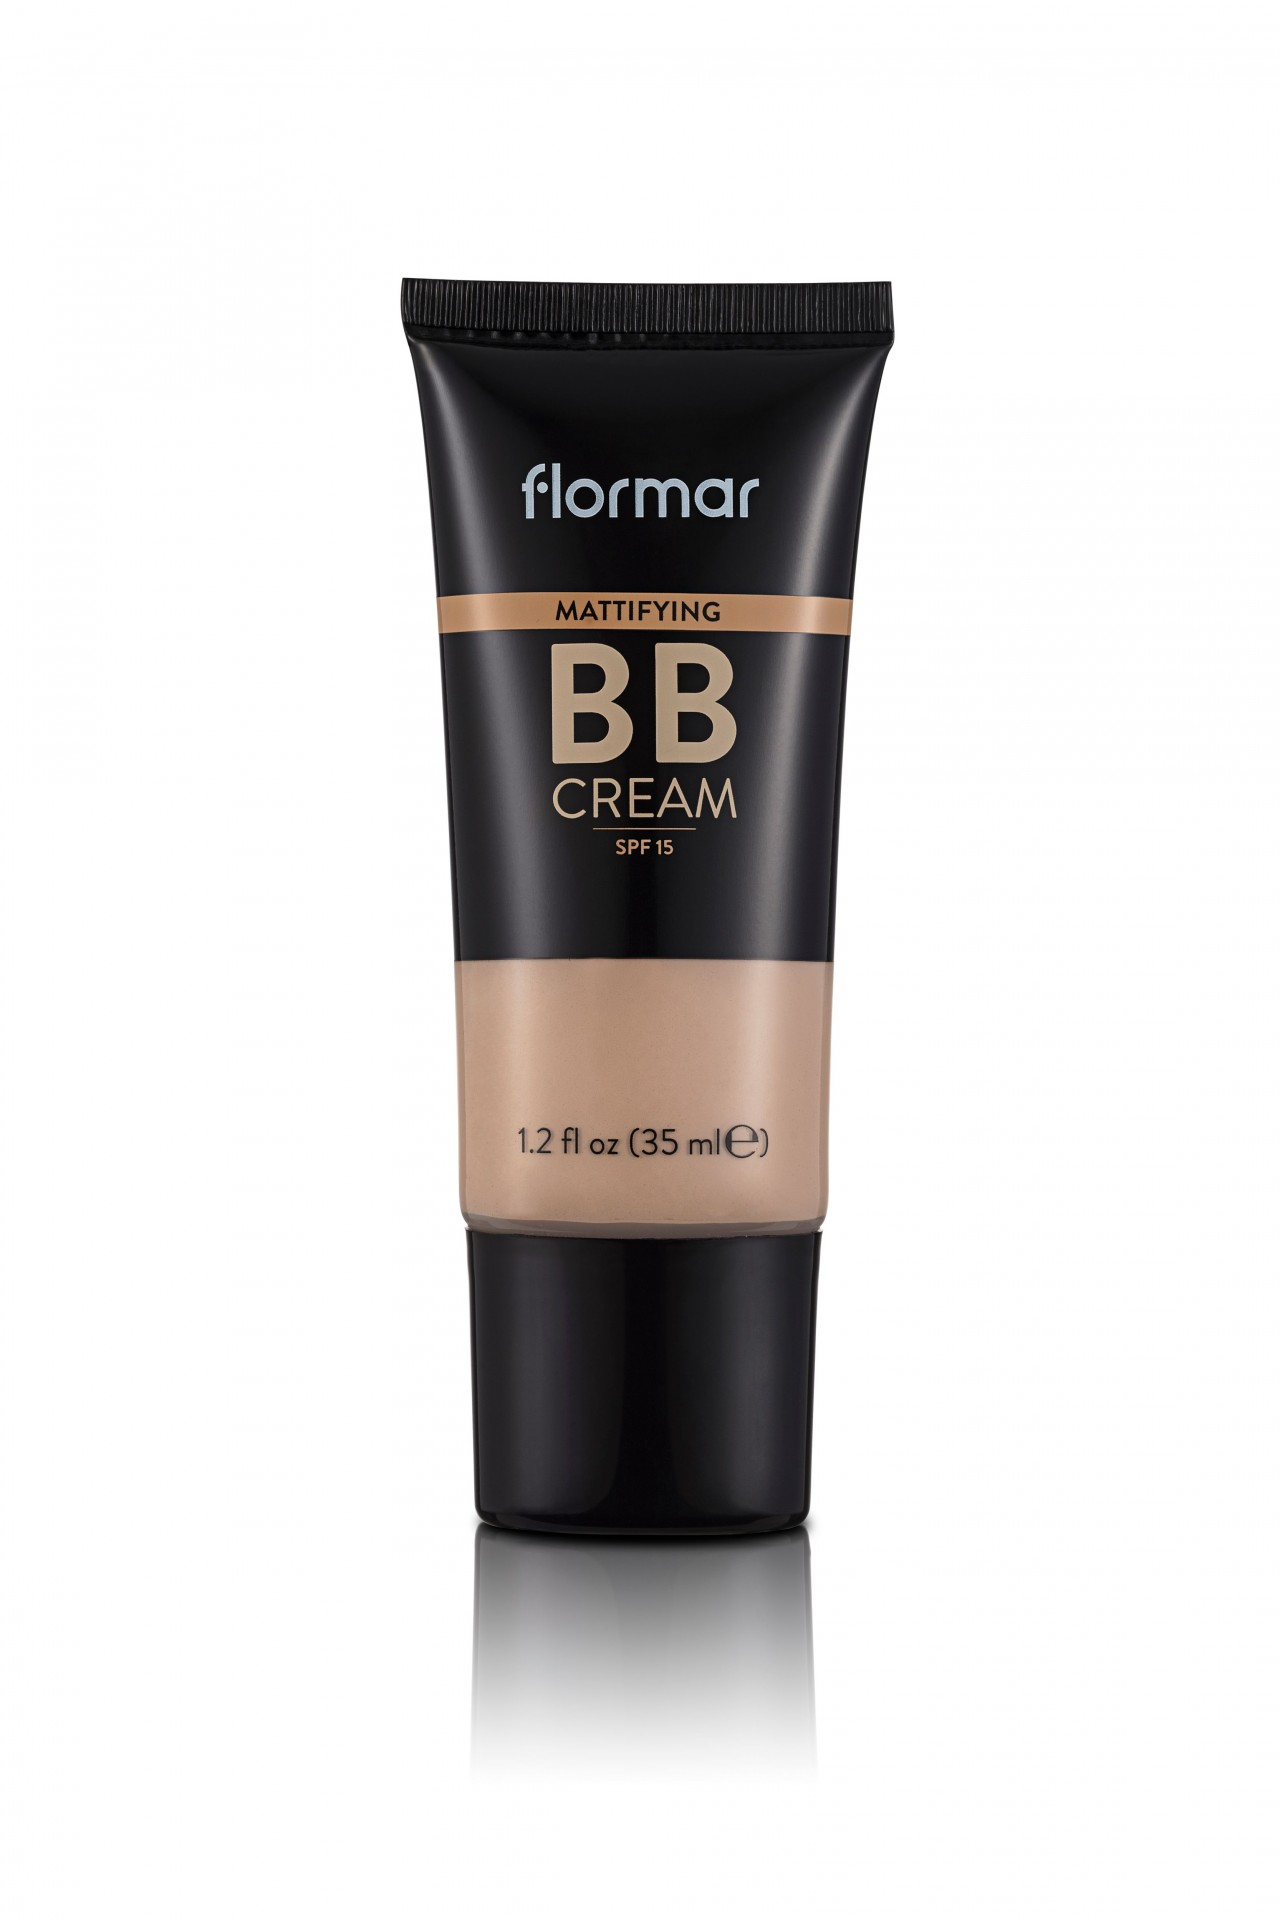 FLORMAR MATTIFYING BB CREAM